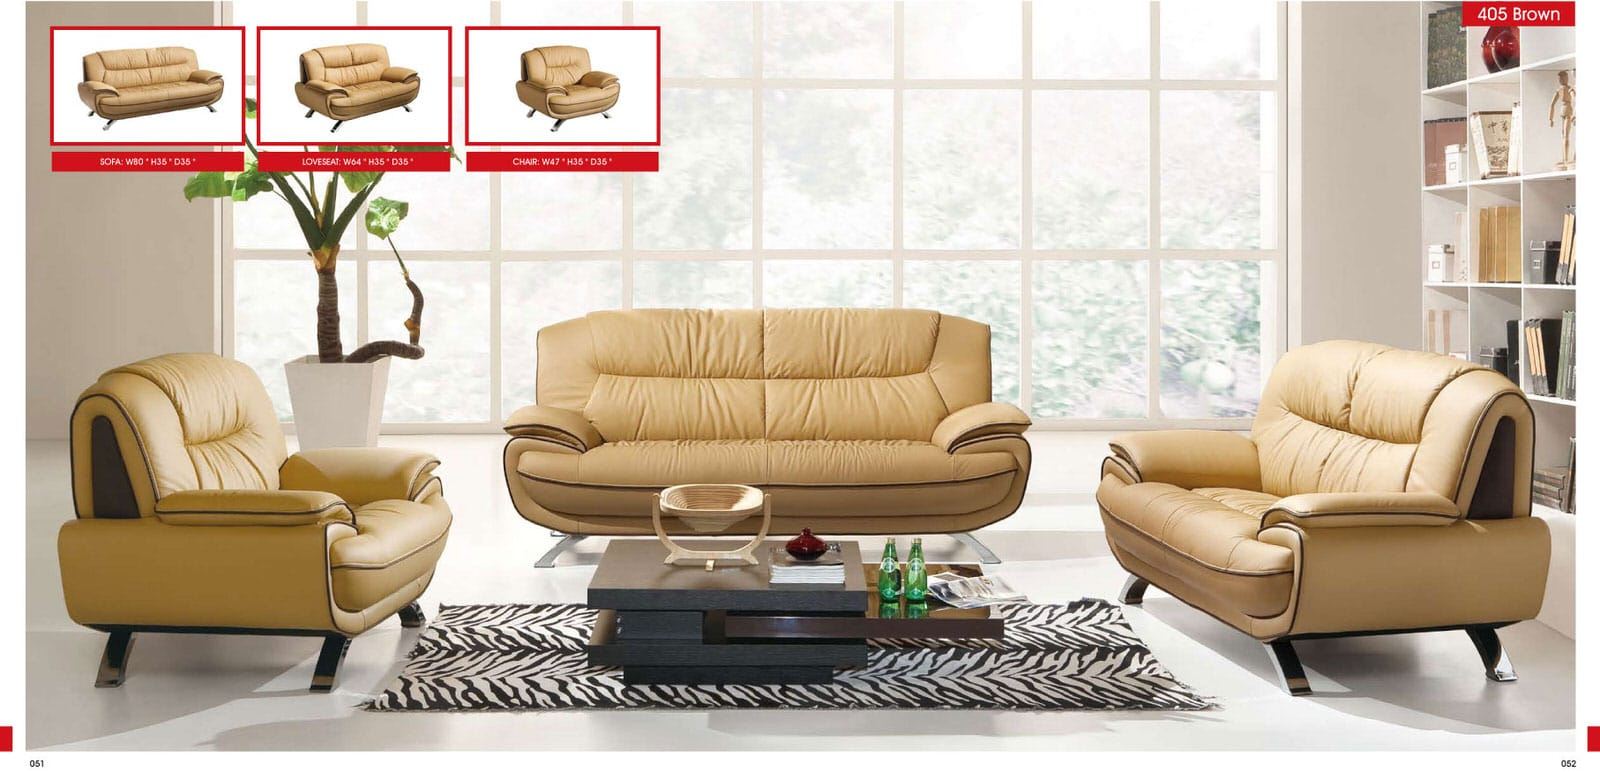 405 brown leather sofa set by esf for Living room modern sofa